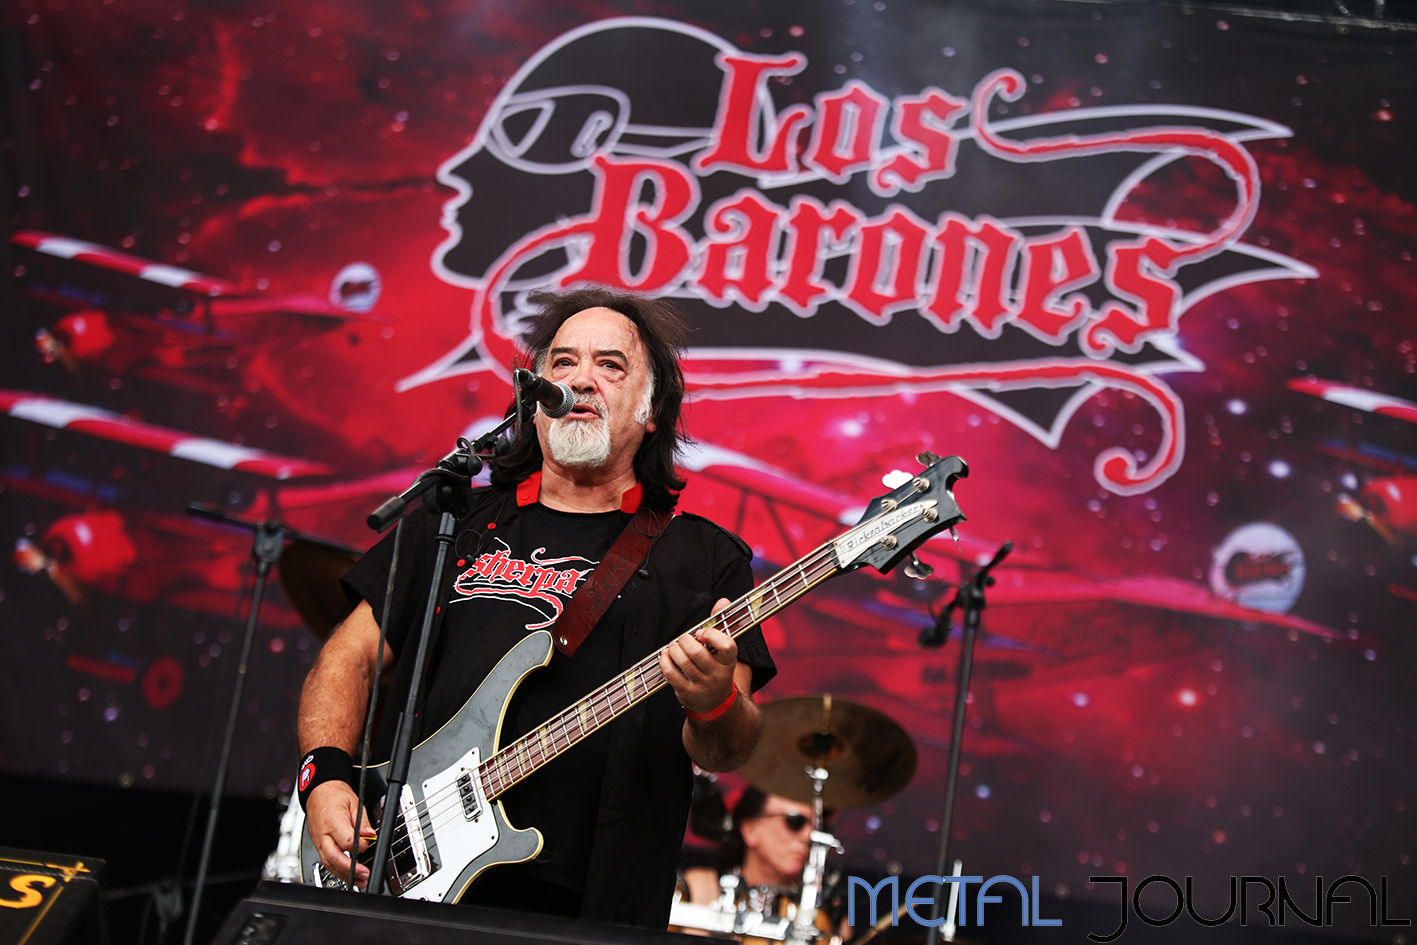 los barones - leyendas del rock 2019 metal journal pic 6